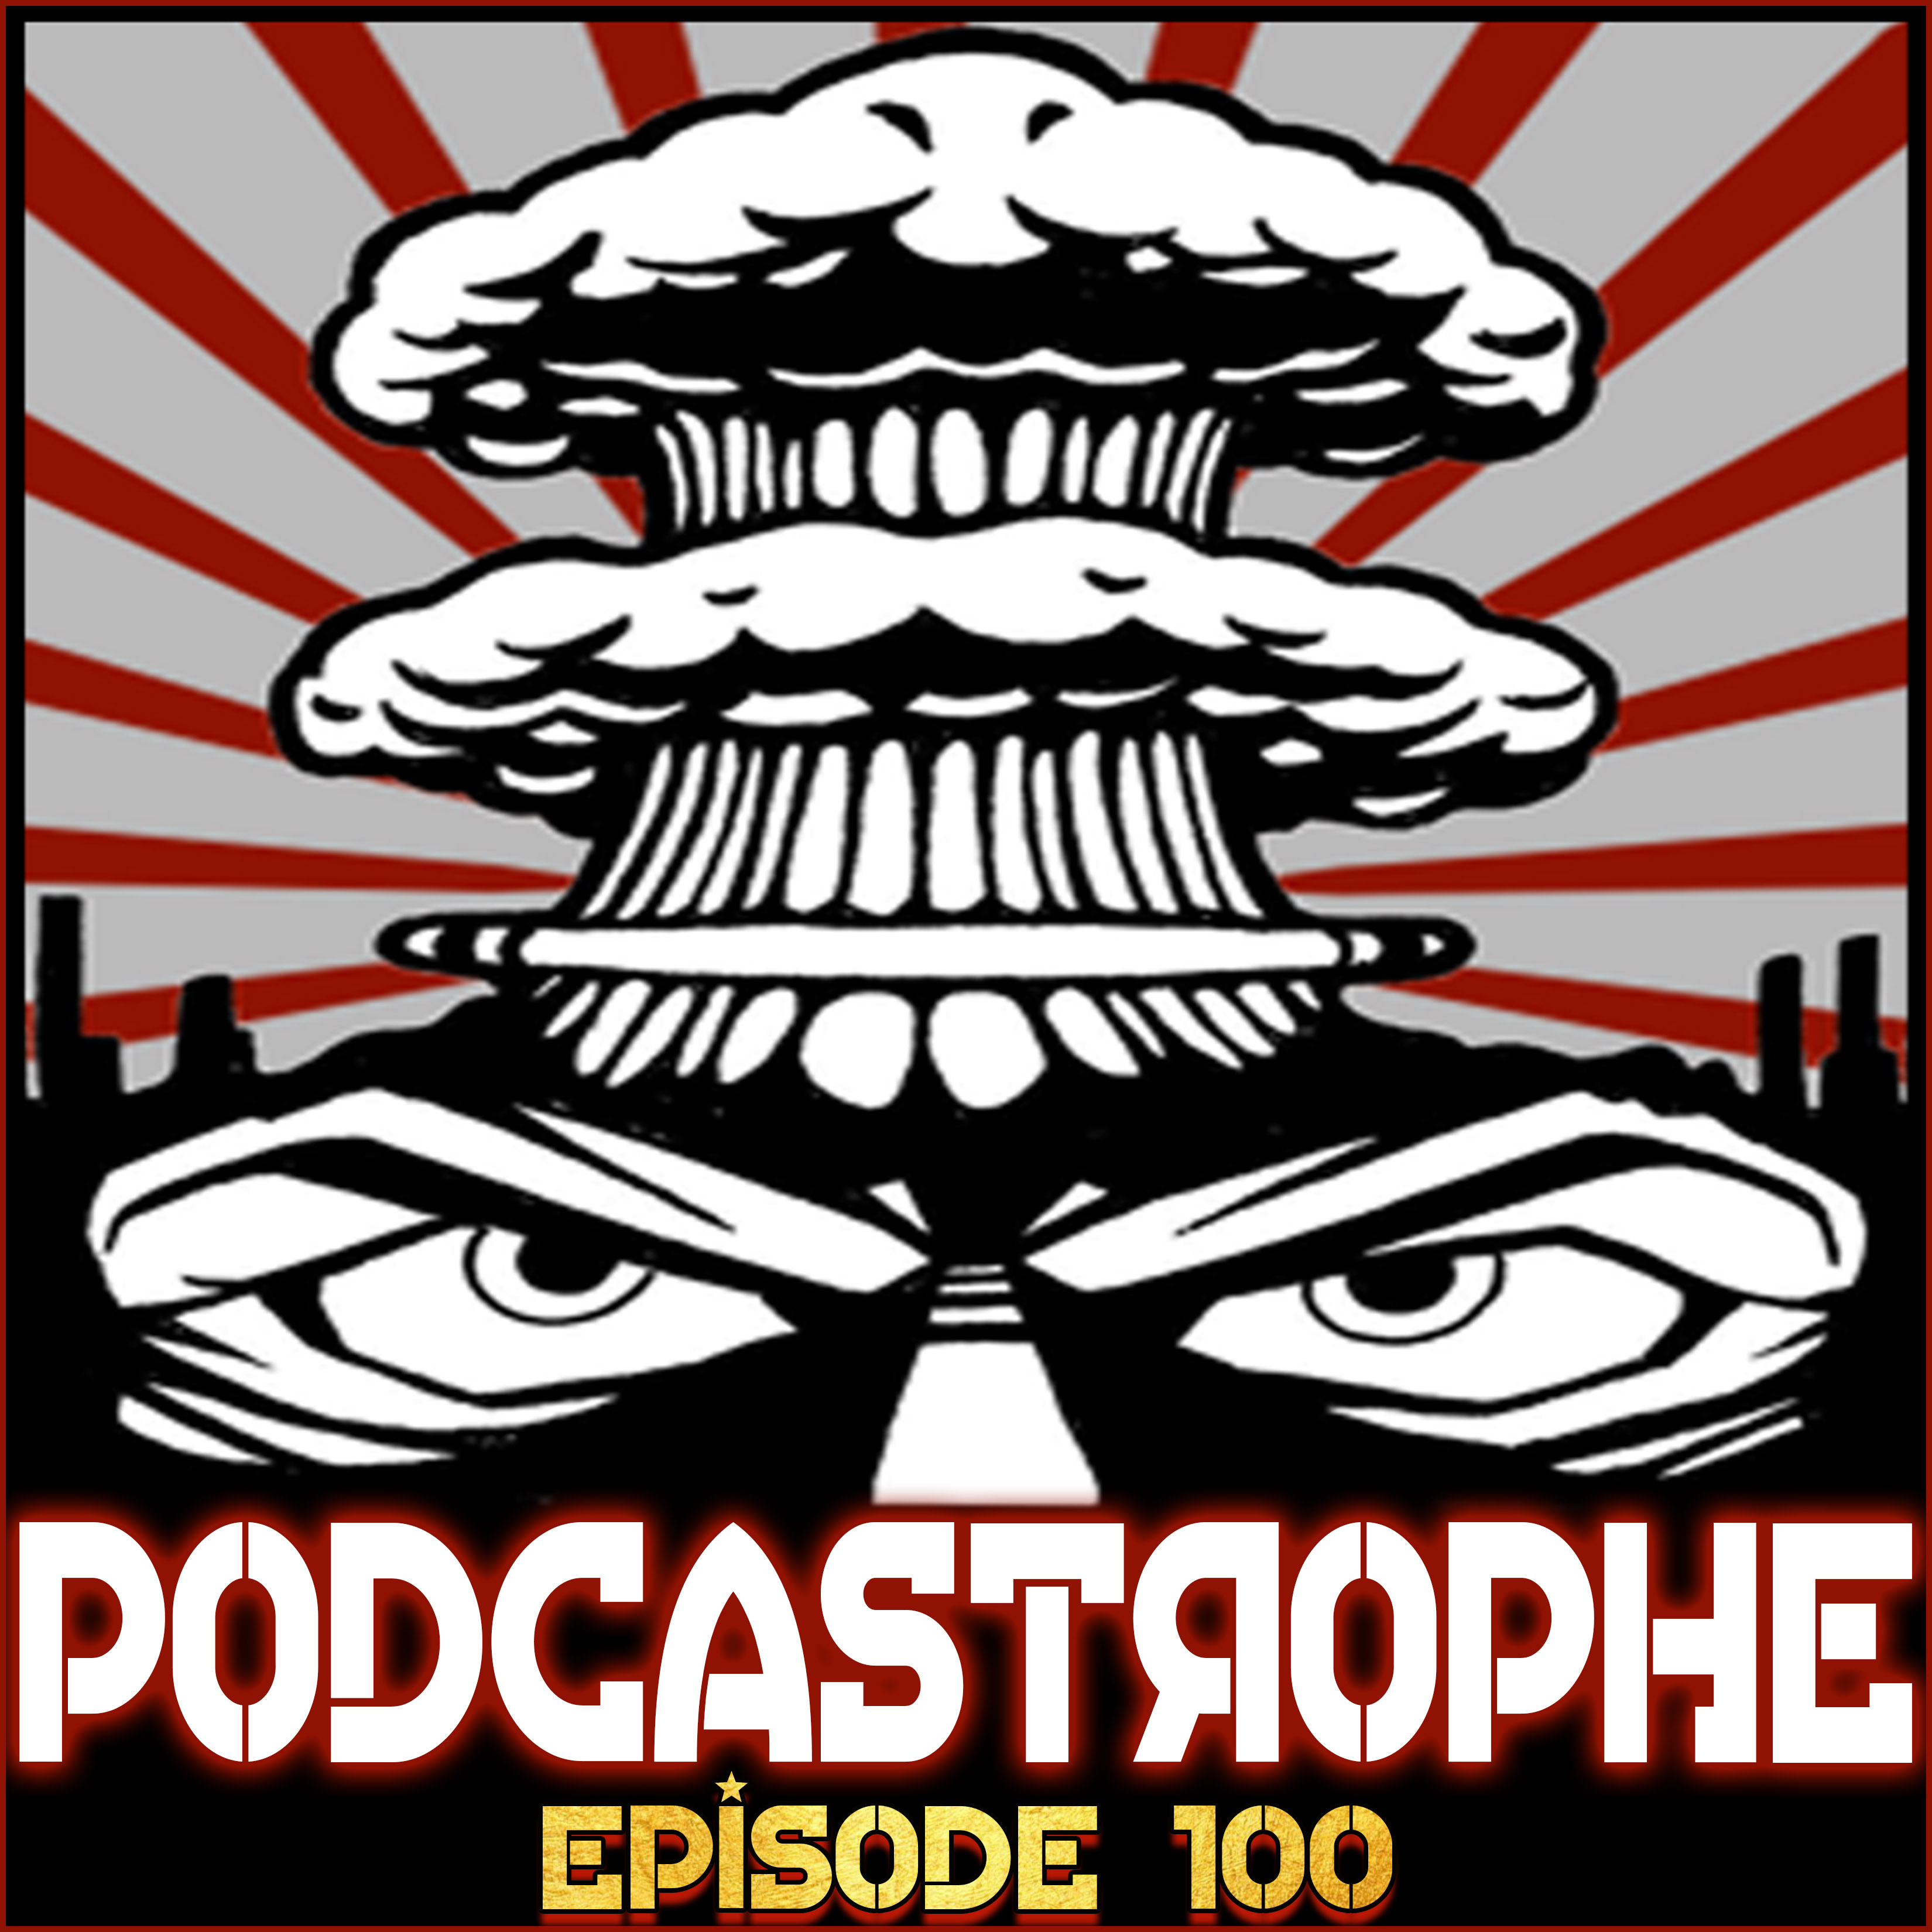 Podcastrophe 100 - Like It, Love It, Yee